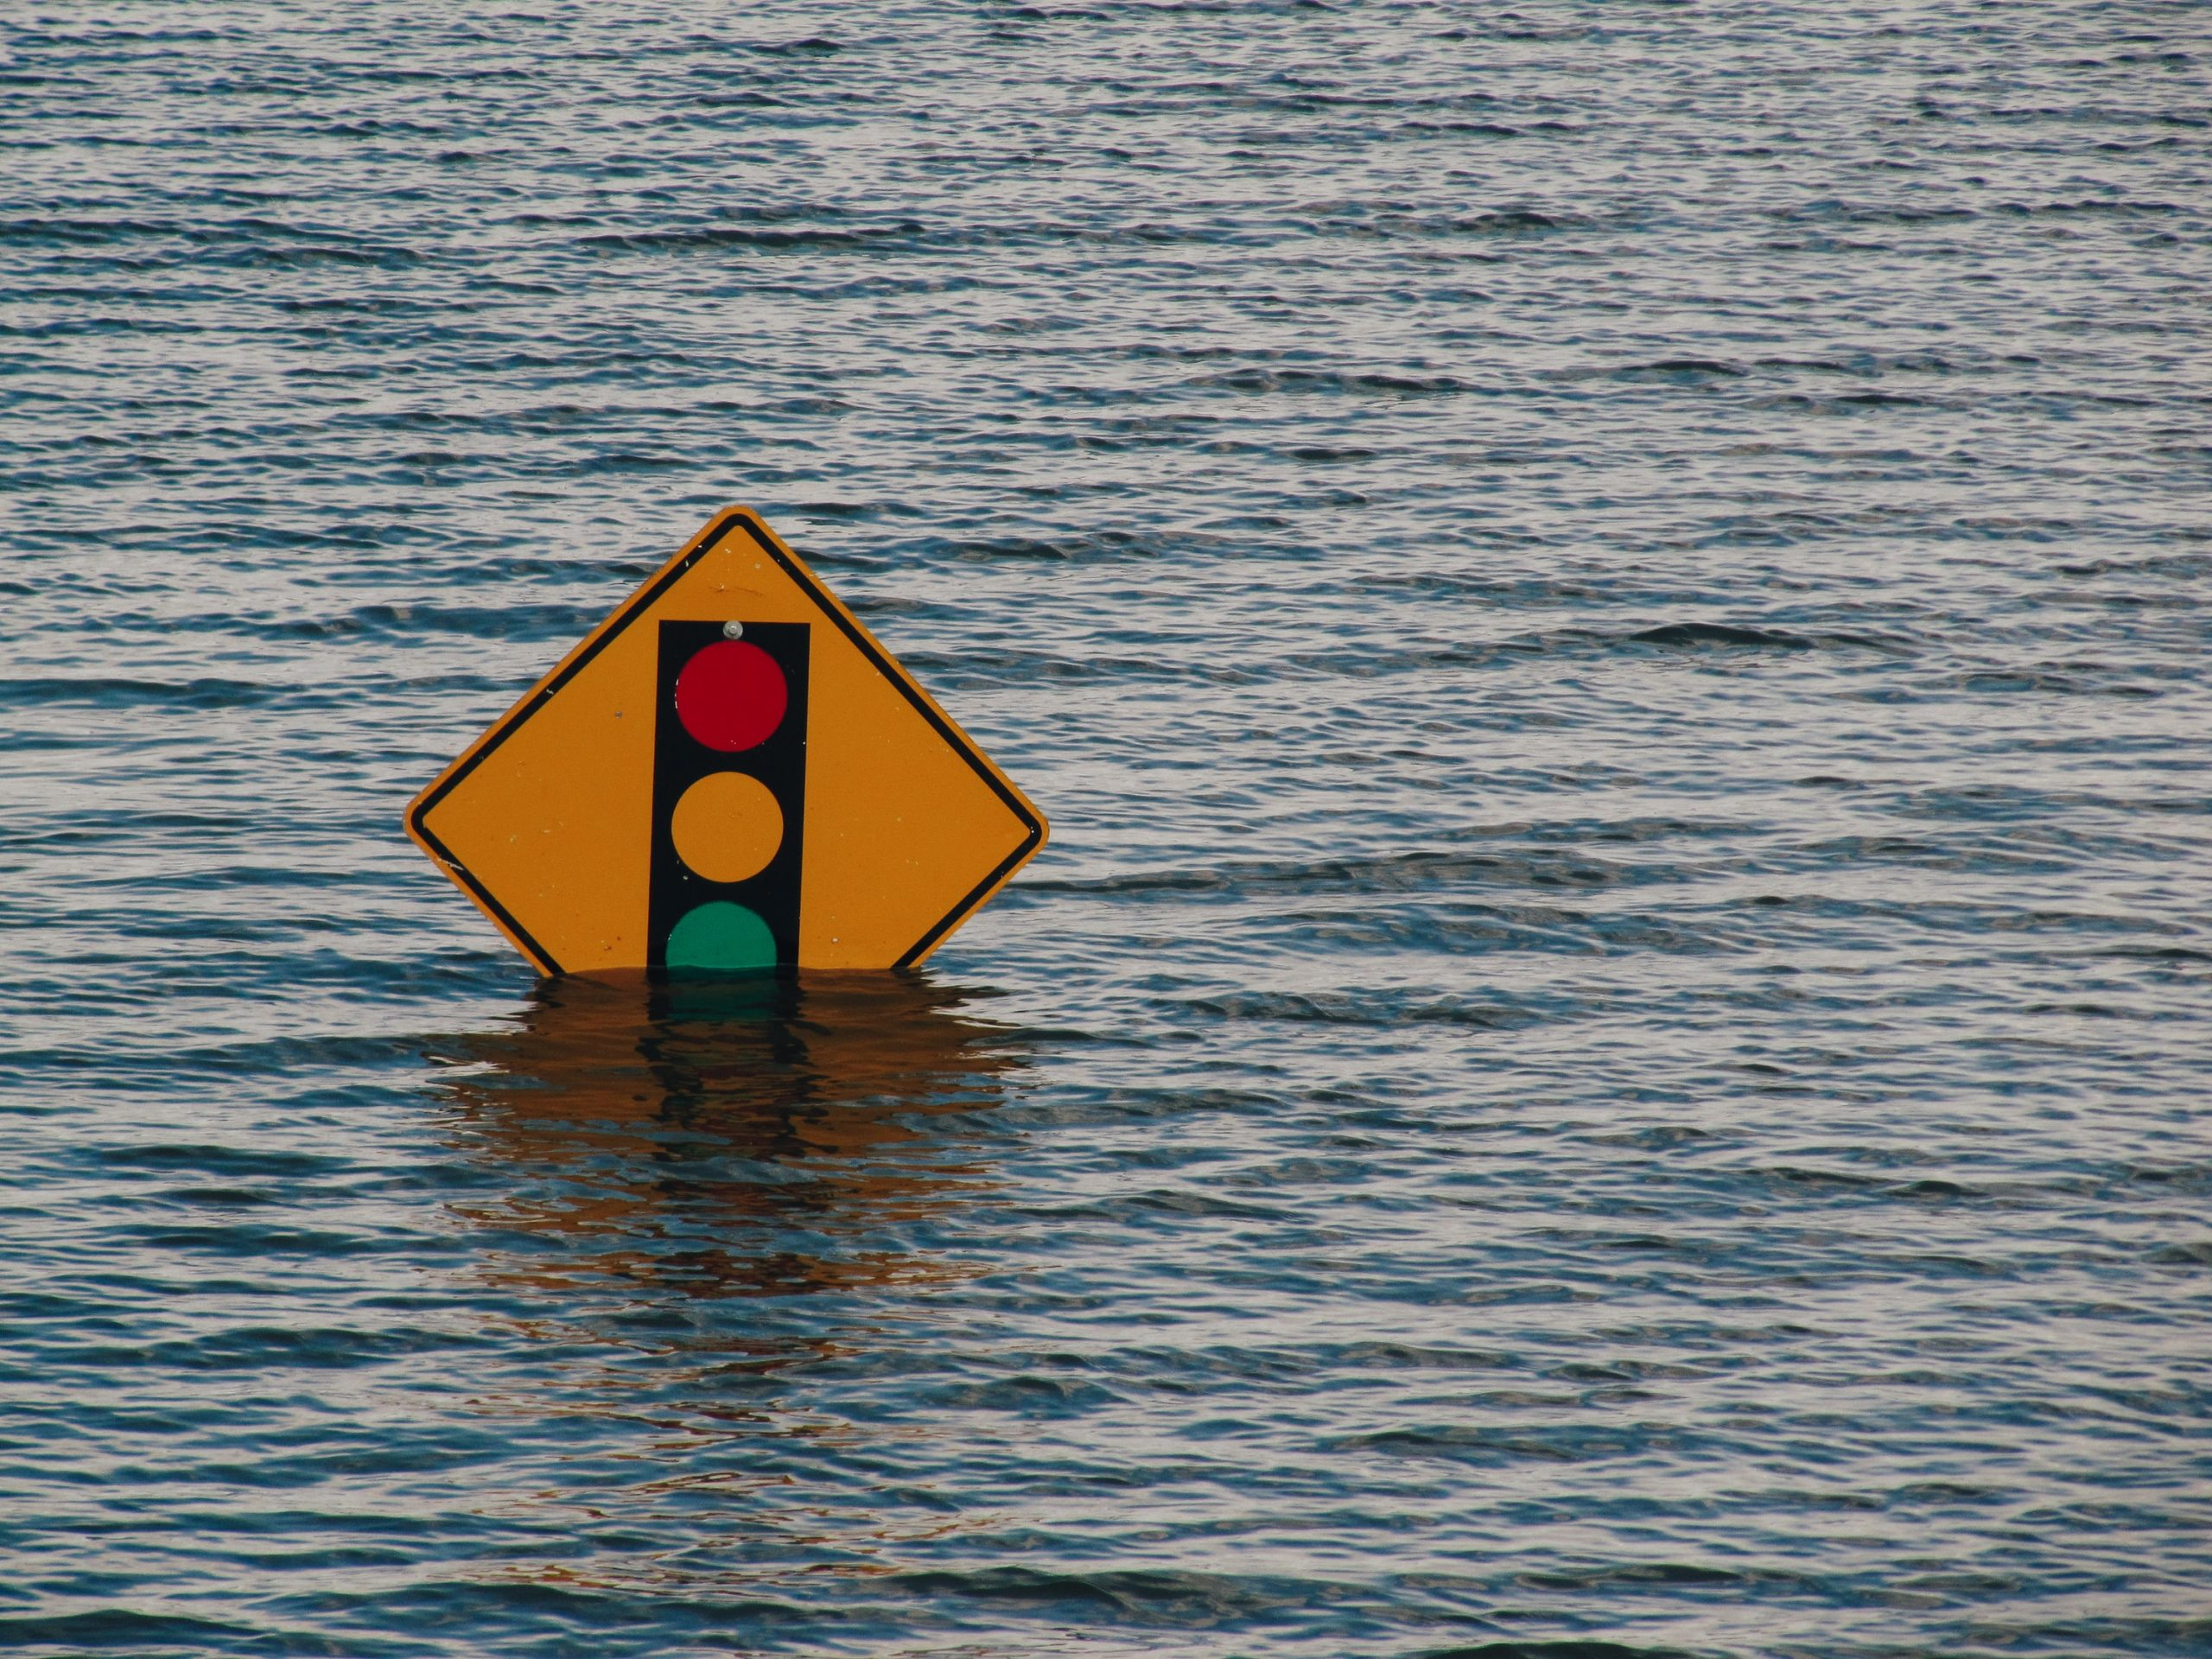 Street sign underwater with flooding